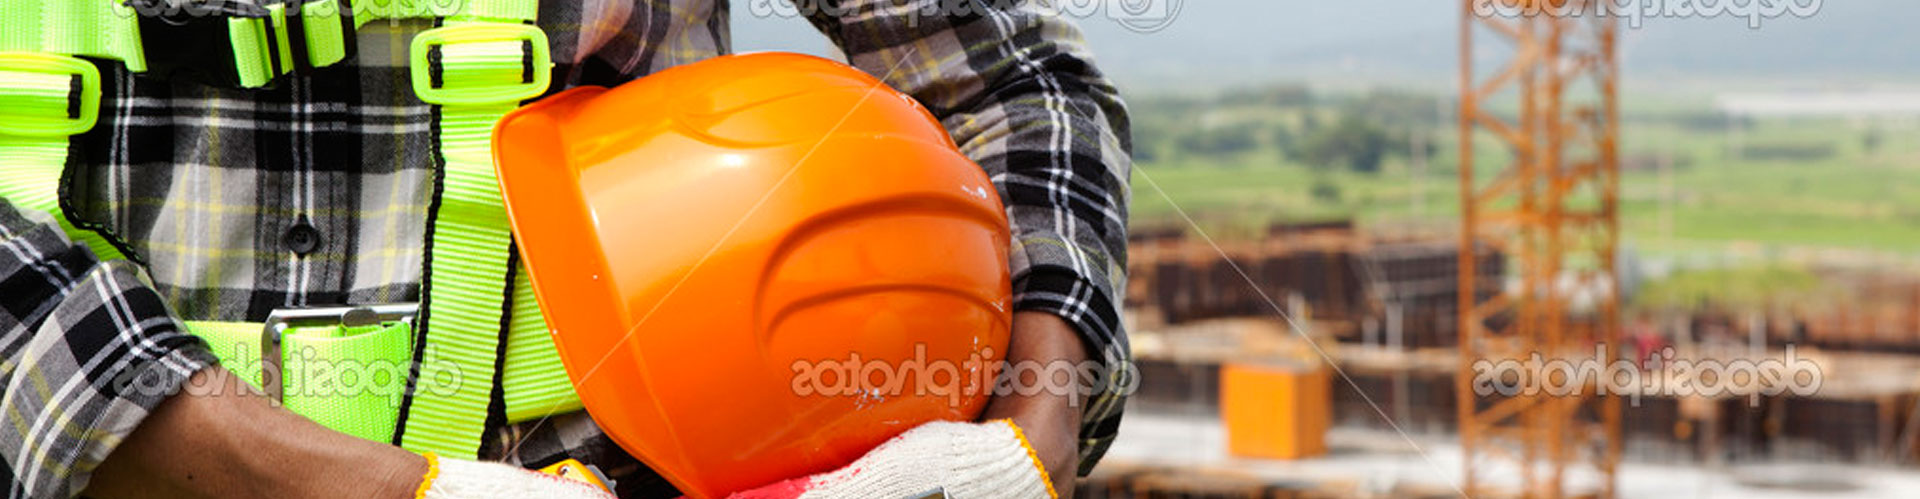 TIPS-Work-Injury-Prevention-Rogers-MN_Header-10